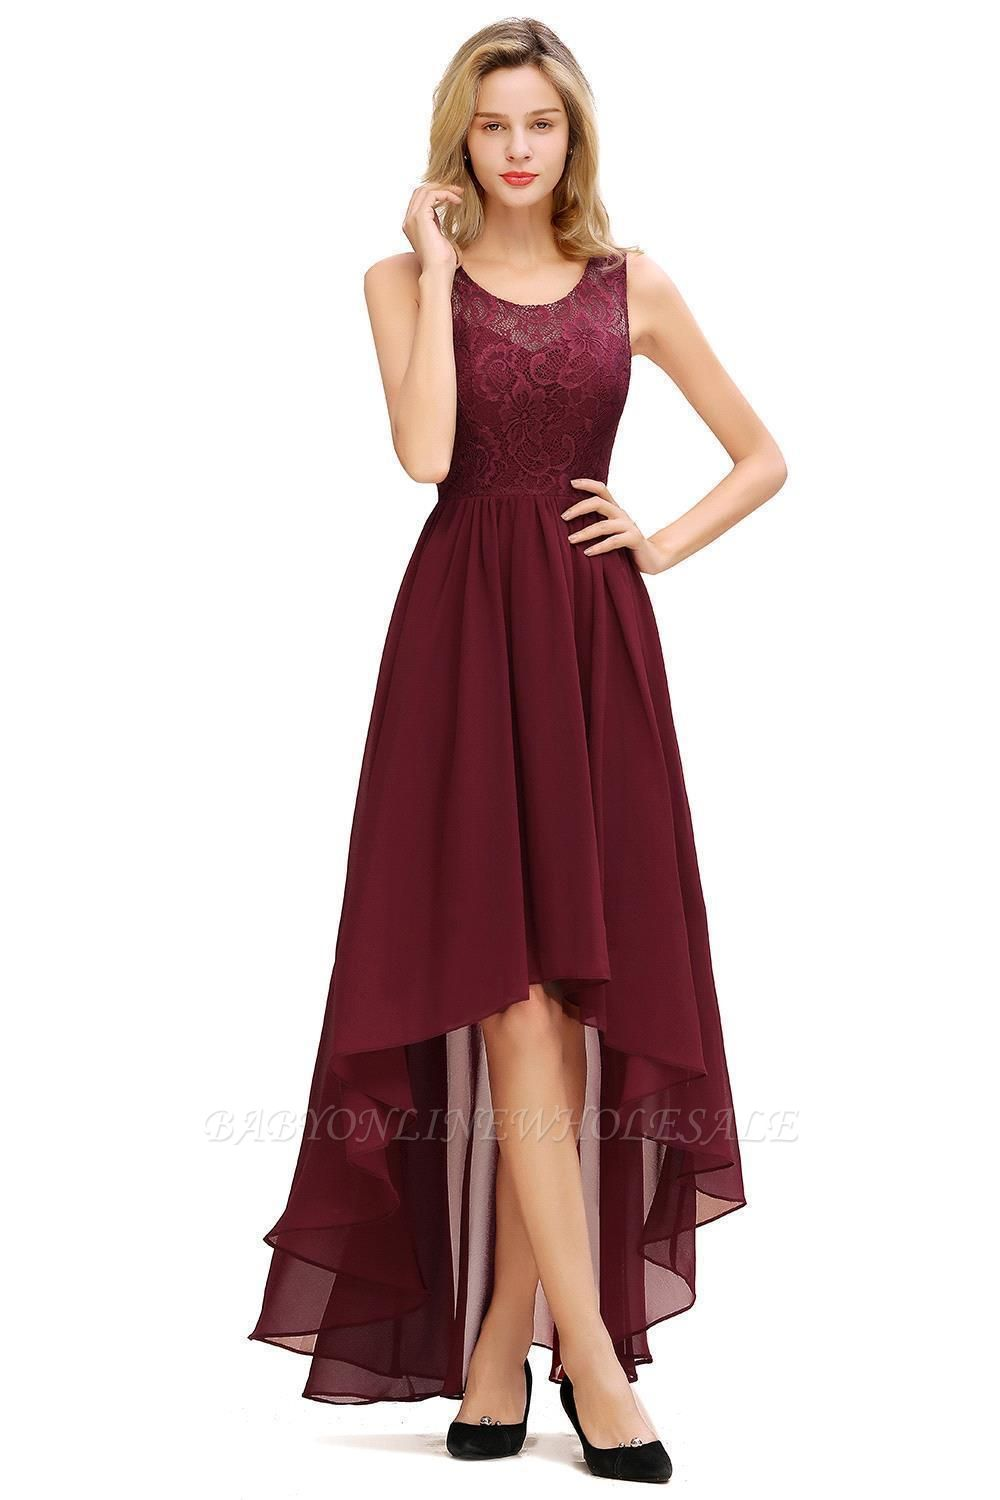 Simple Affordable Sleeveless Burgundy Lace High Low Formal Dress